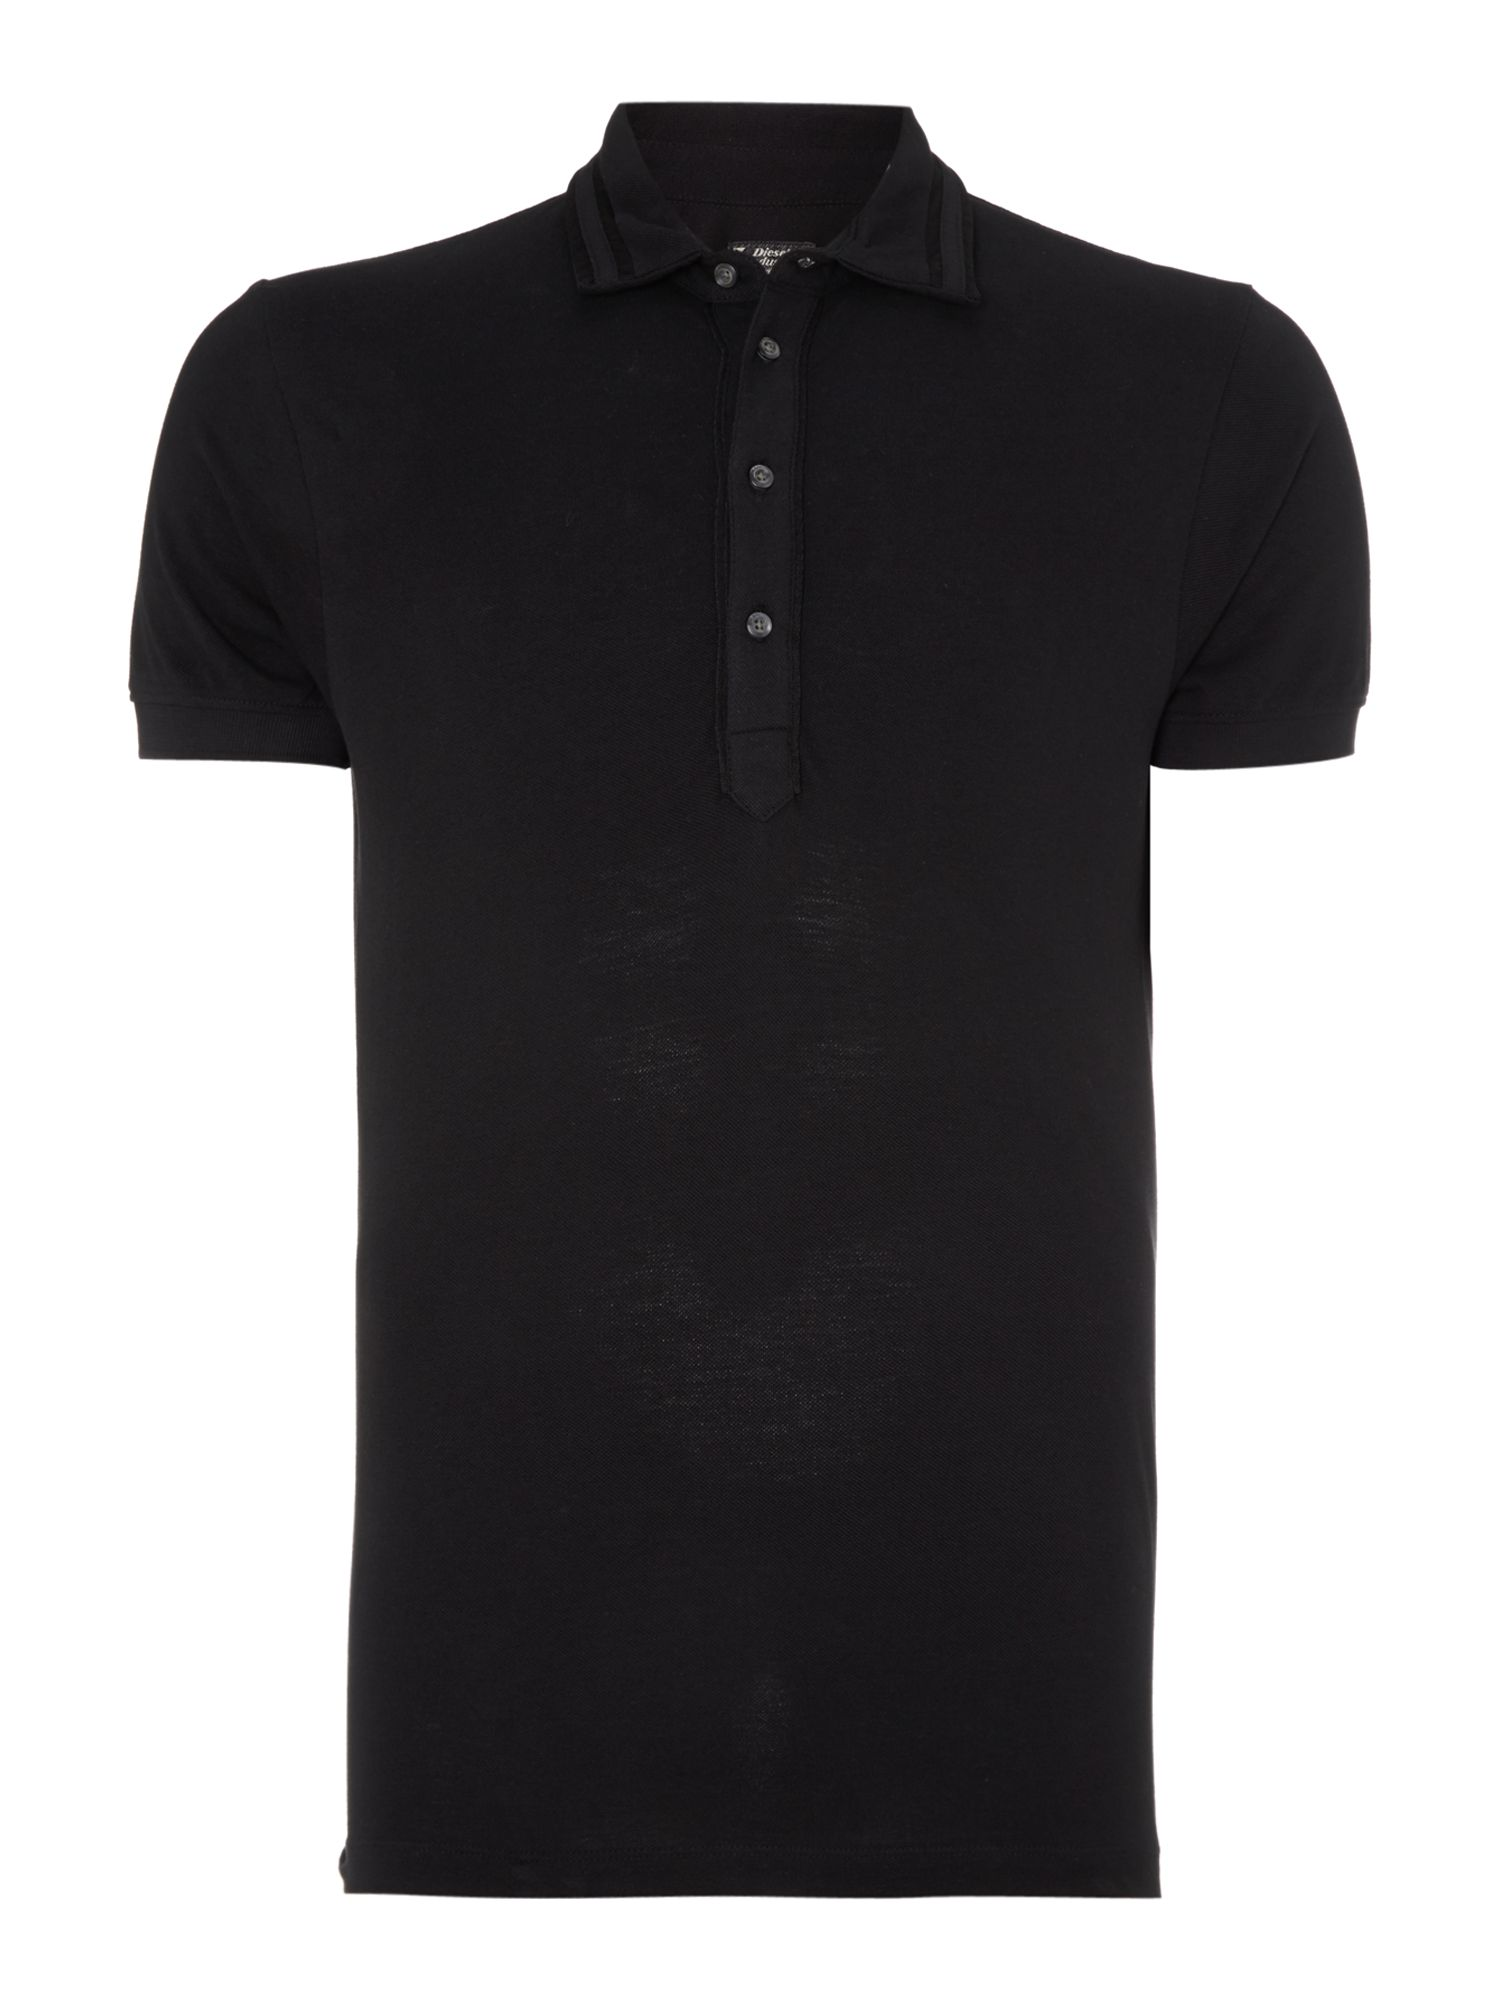 Collar trim polo shirt